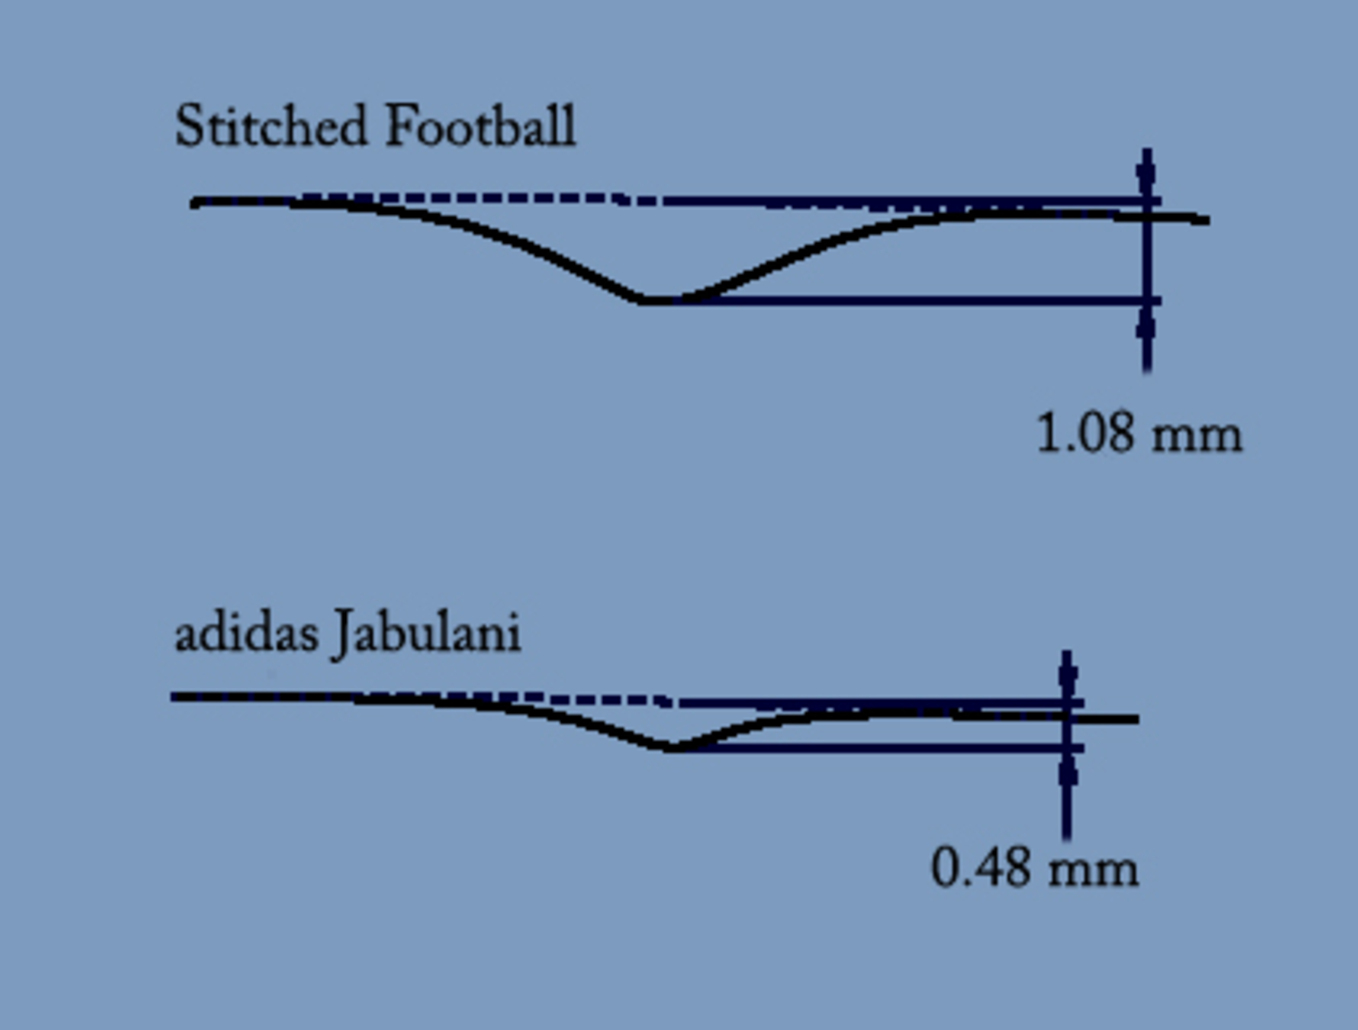 How Will The 2014 World Cup Ball Swerve Plasma Driver Schematic A Laser Scanned Profile Of Seams From 32 Panel Stitched Football And Adidas Jabulani Credit John Hart Centre For Sports Engineering Research